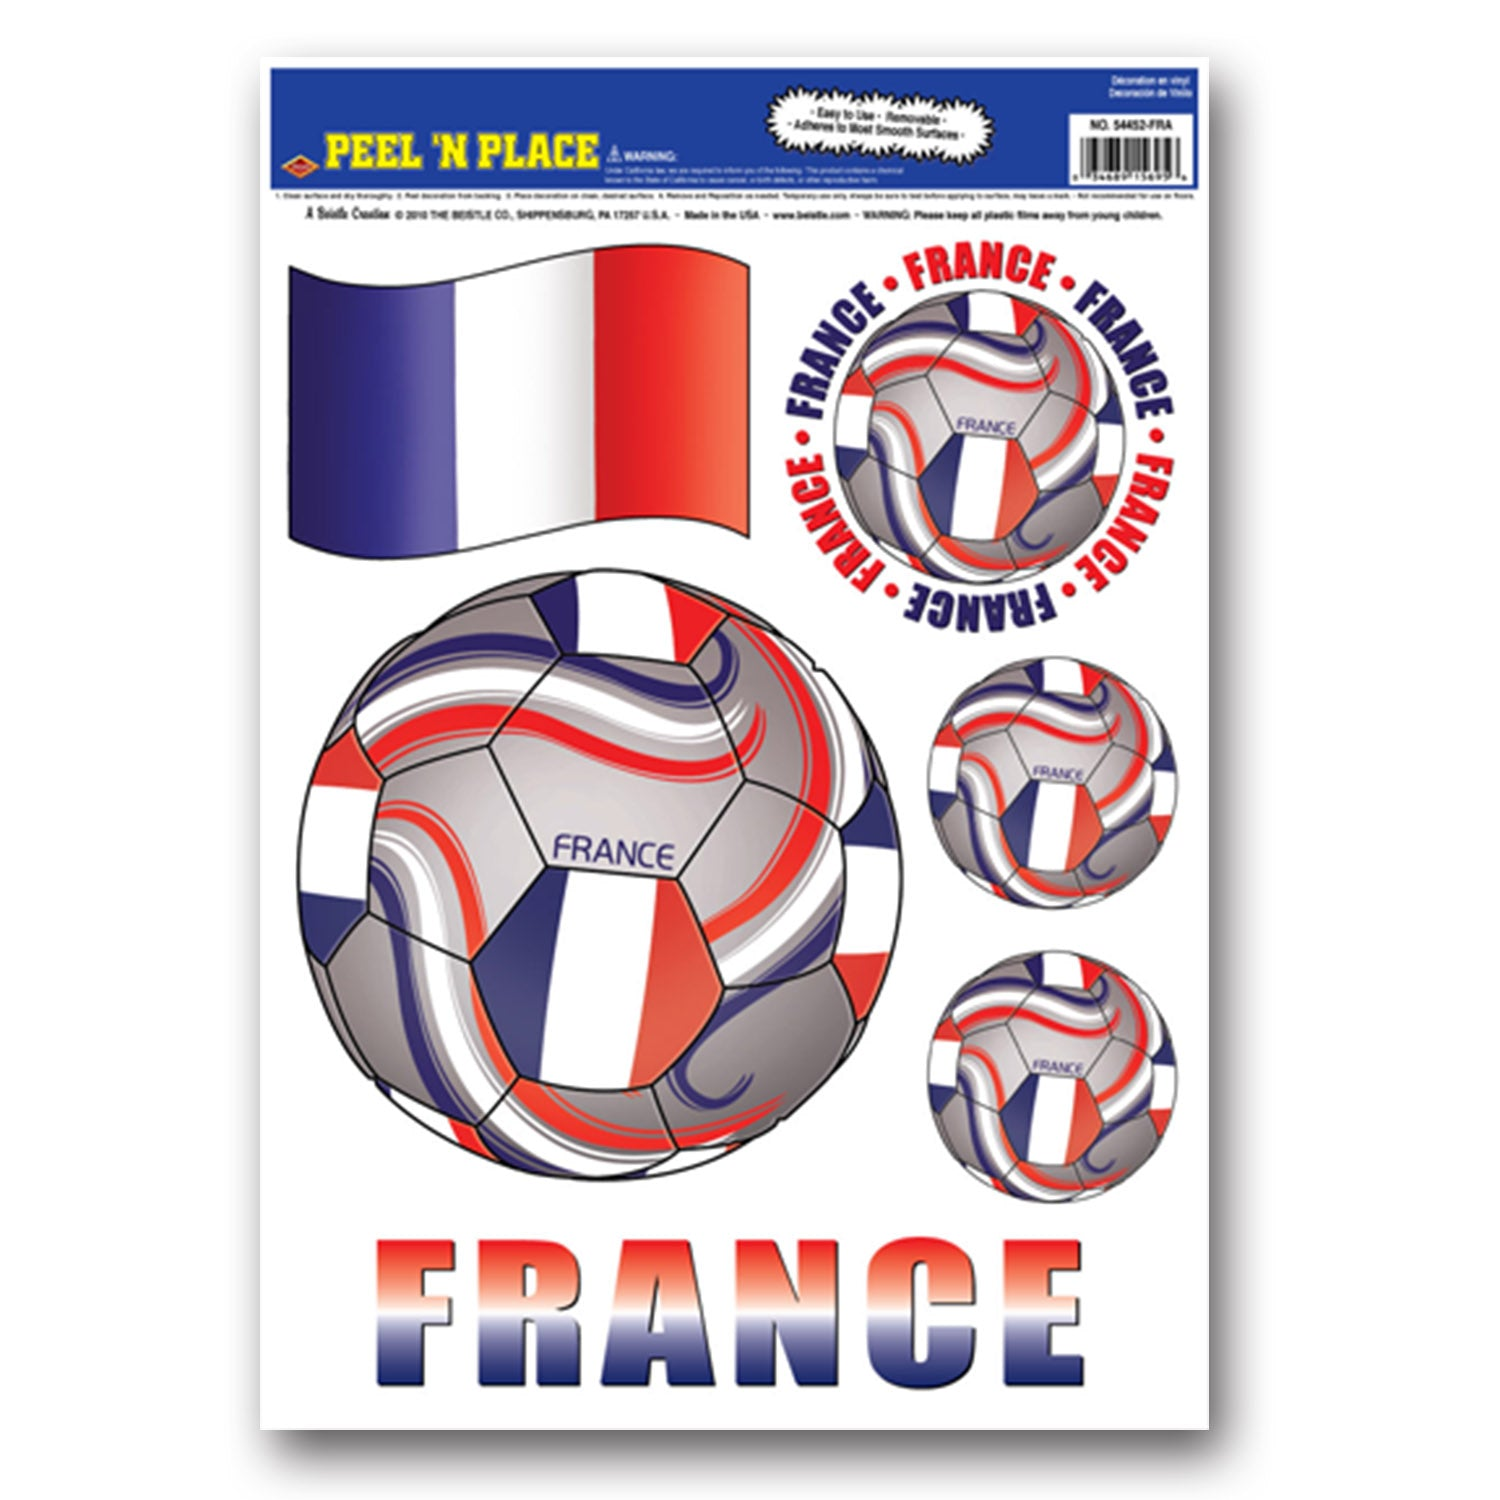 Peel 'N Place - France (6/Sheet) by Beistle - Soccer Theme Decorations